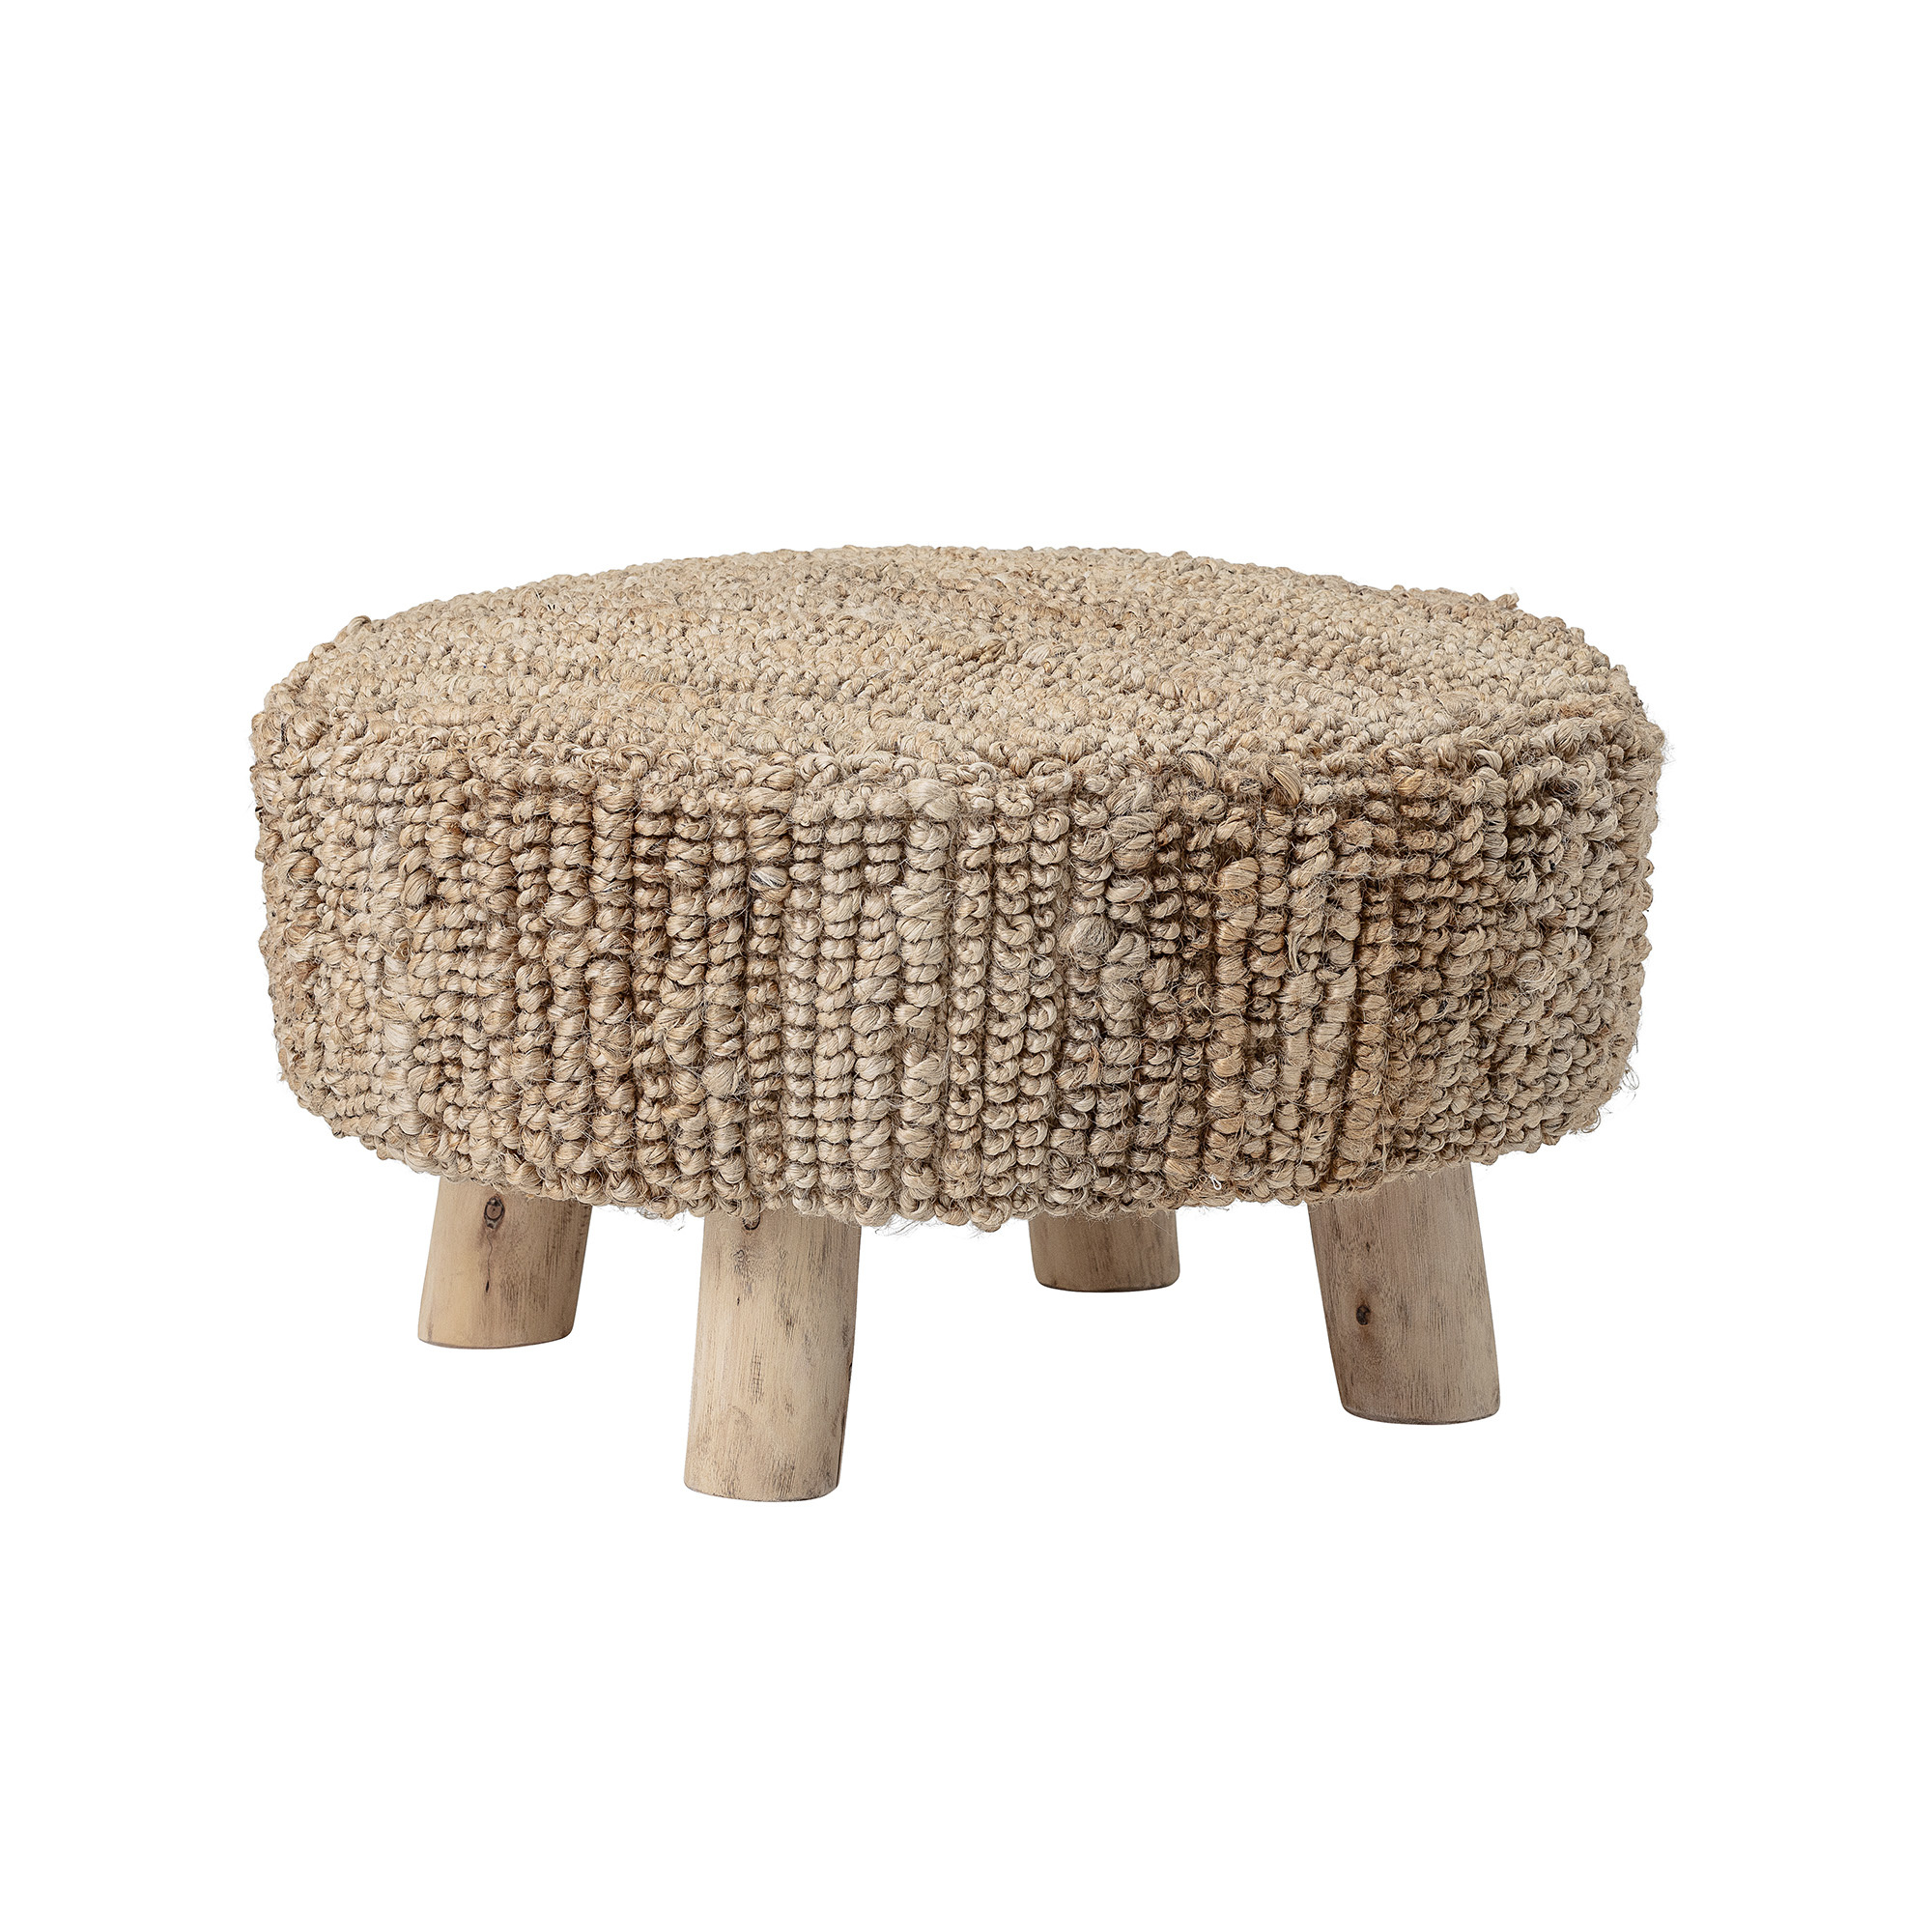 Bloomingville Wooden stool round in wood with weaved seating - natural and grey - Copy